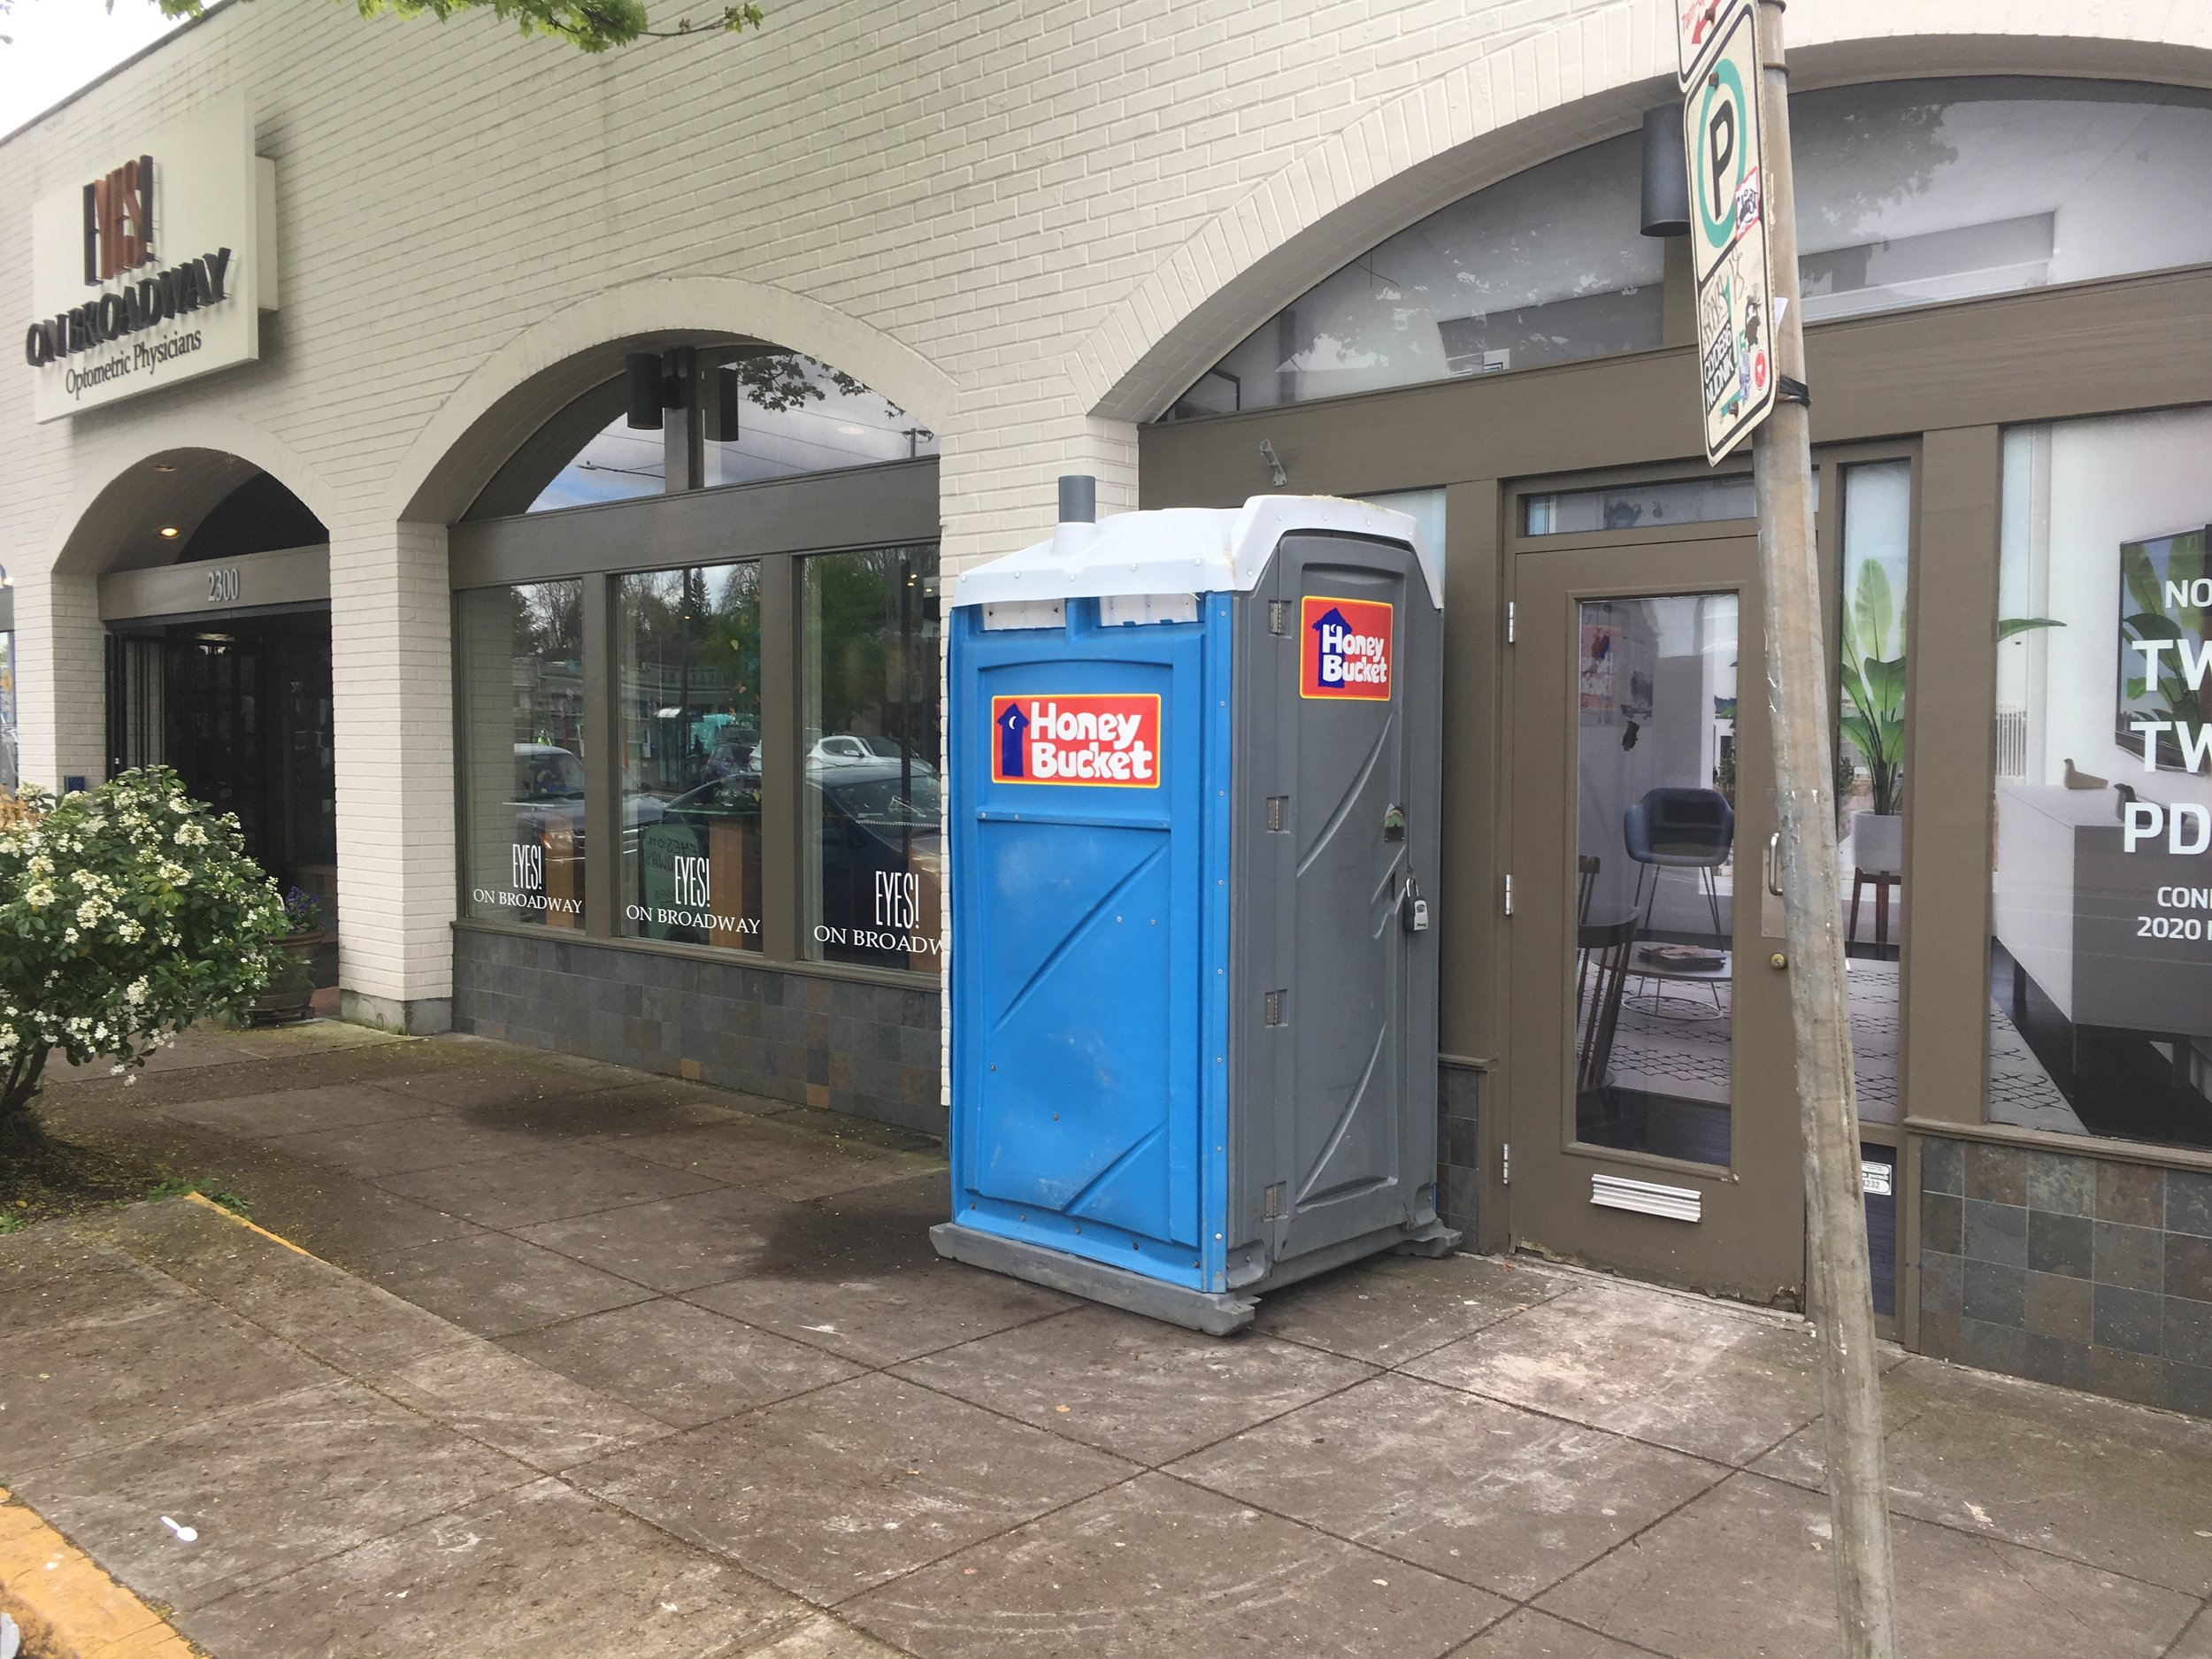 Success drives the need for more space…and Eyes on Broadway has been  voted the top eyewear shop in Portland for 4 years running . Of corse the Honey Bucket is only temporary! ;) Image Courtesy: EyesOnBroadway